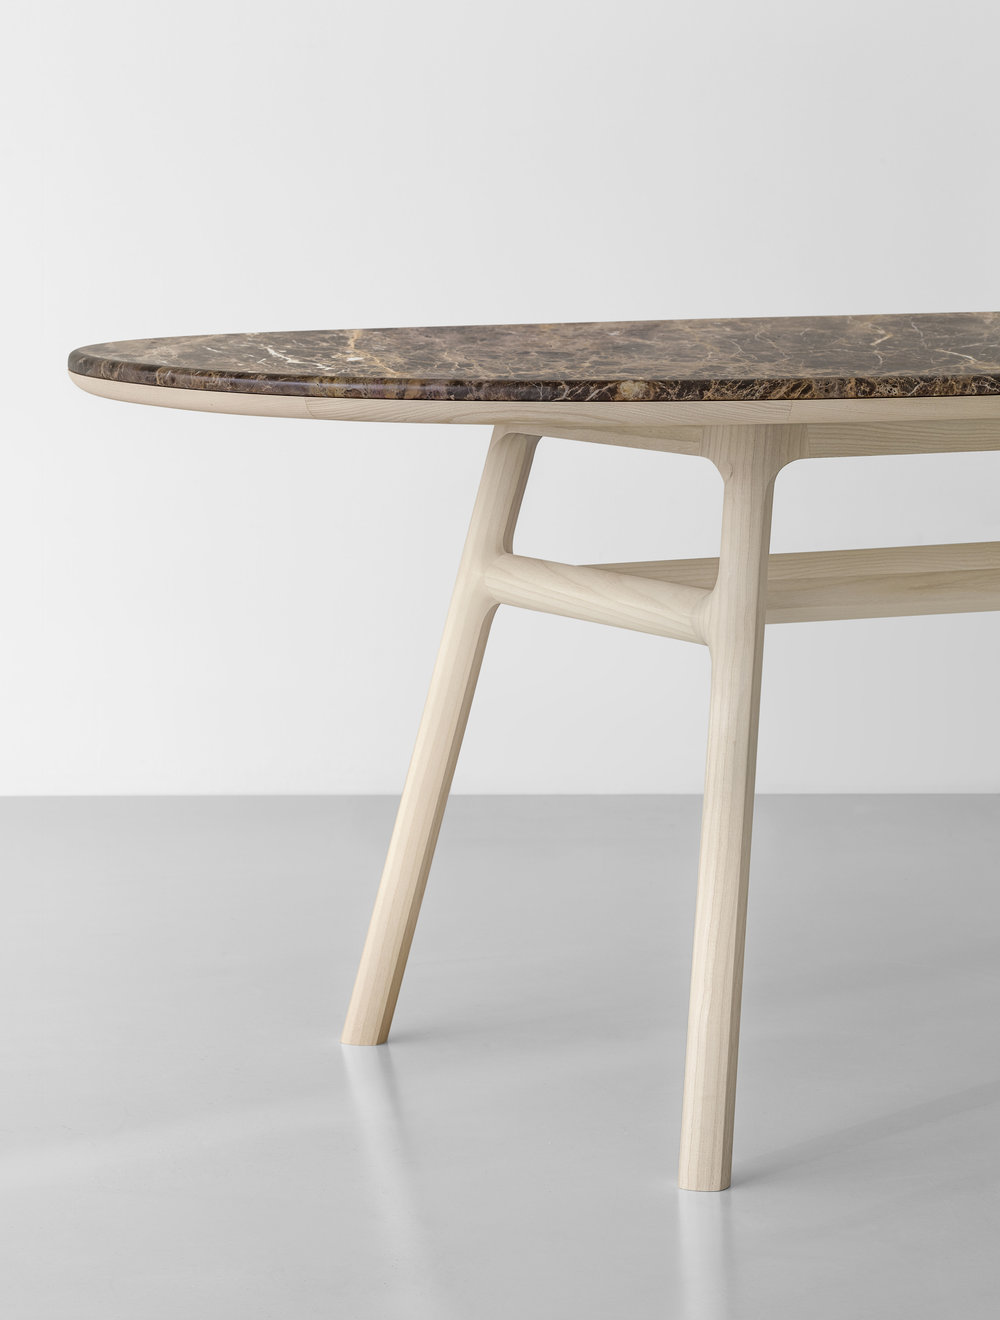 medeo-table_furniture-design_coordination-berlin_05.jpg